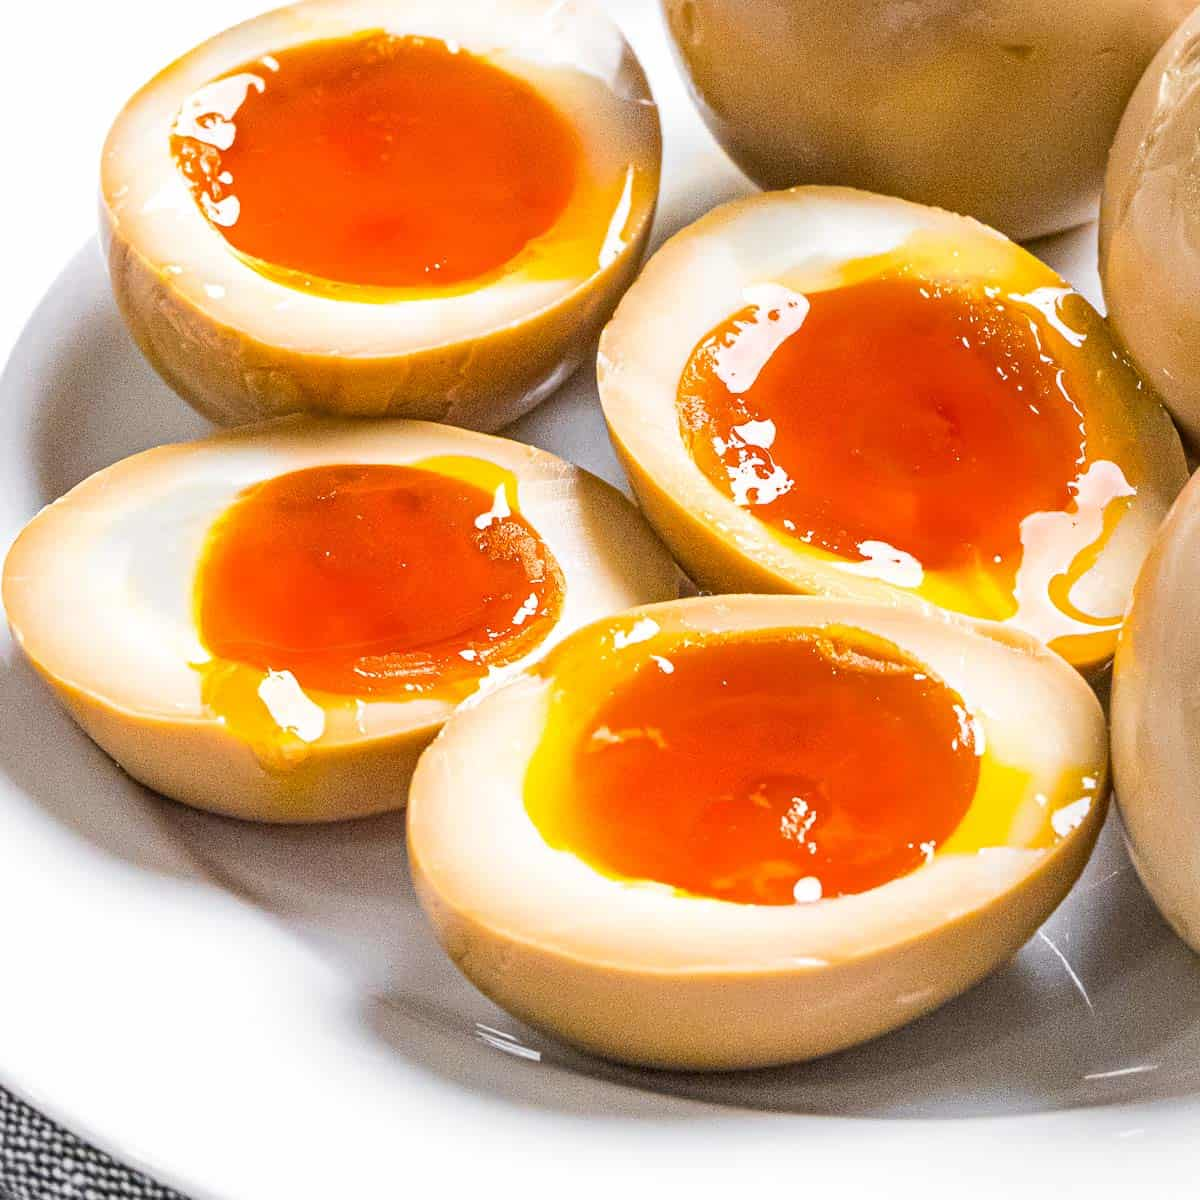 Ramen eggs marinated in soy sauce cut in half to reveal soft boiled eggs with runny yolks.